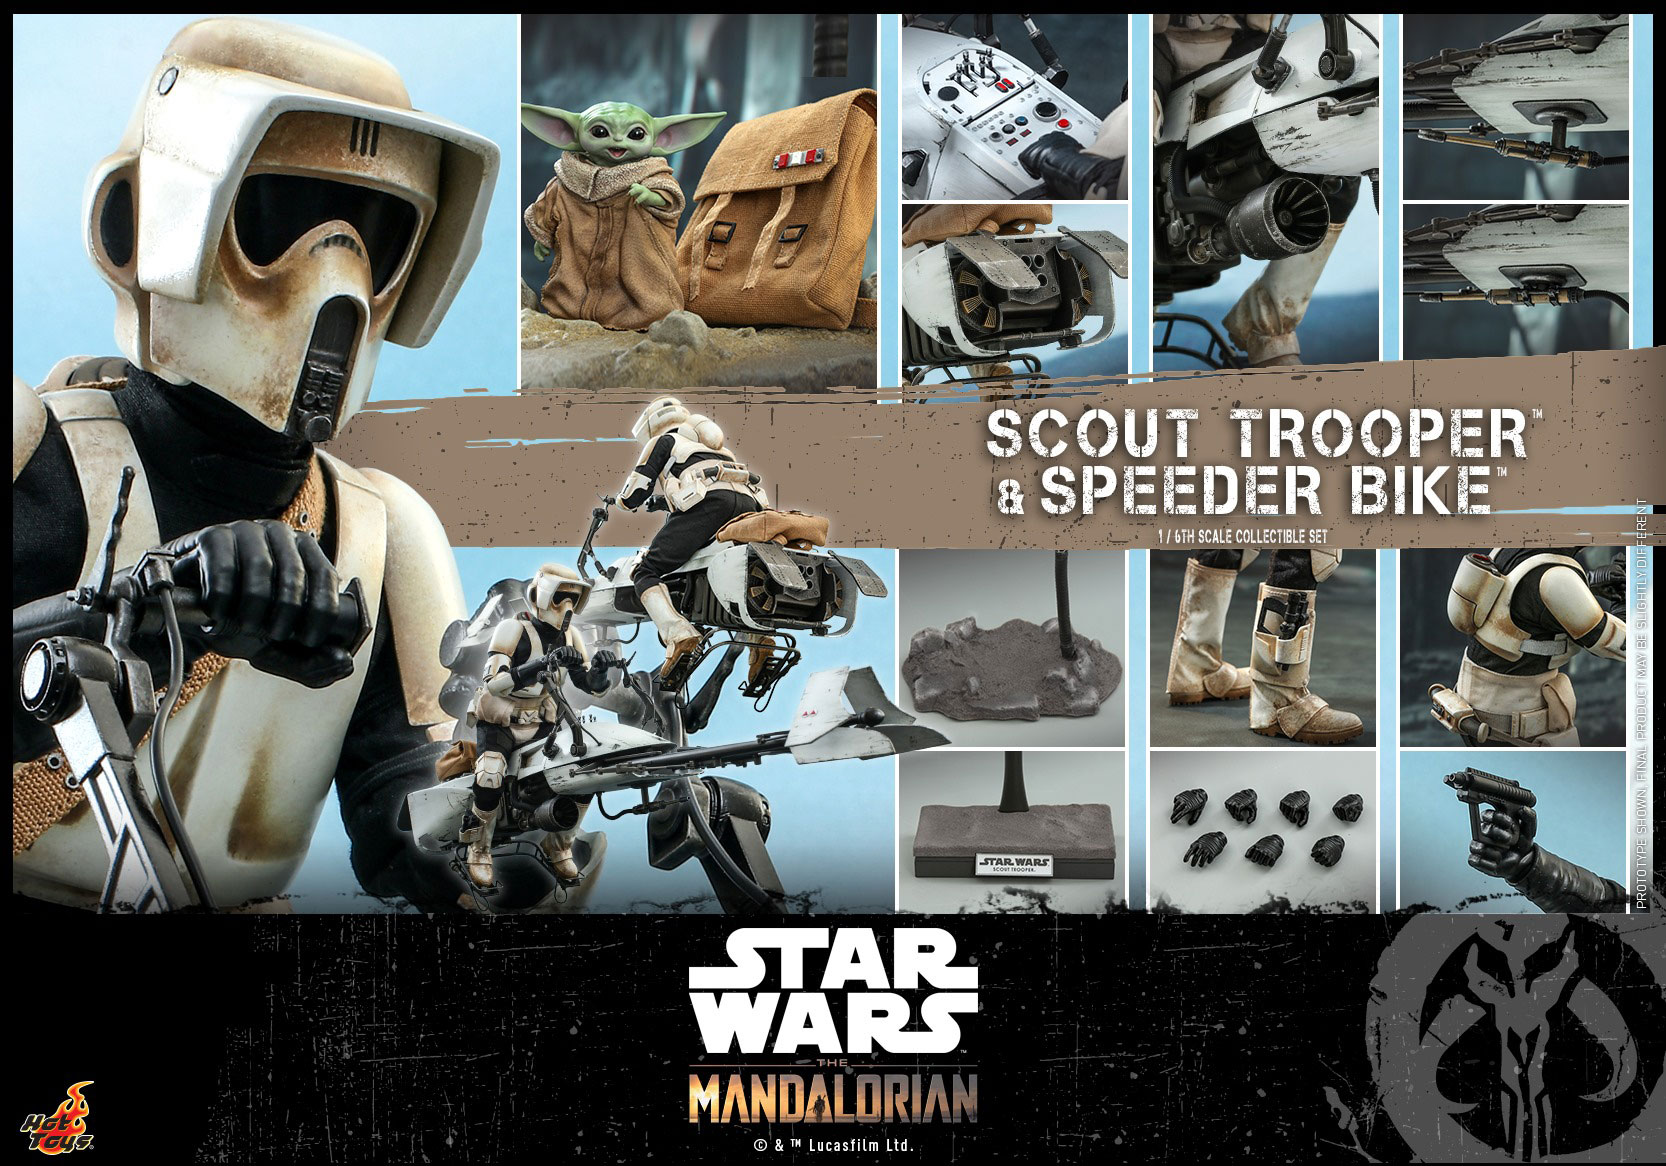 hot-toys-mandalorian-scout-trooper-speeder-bike-sixth-scale-set